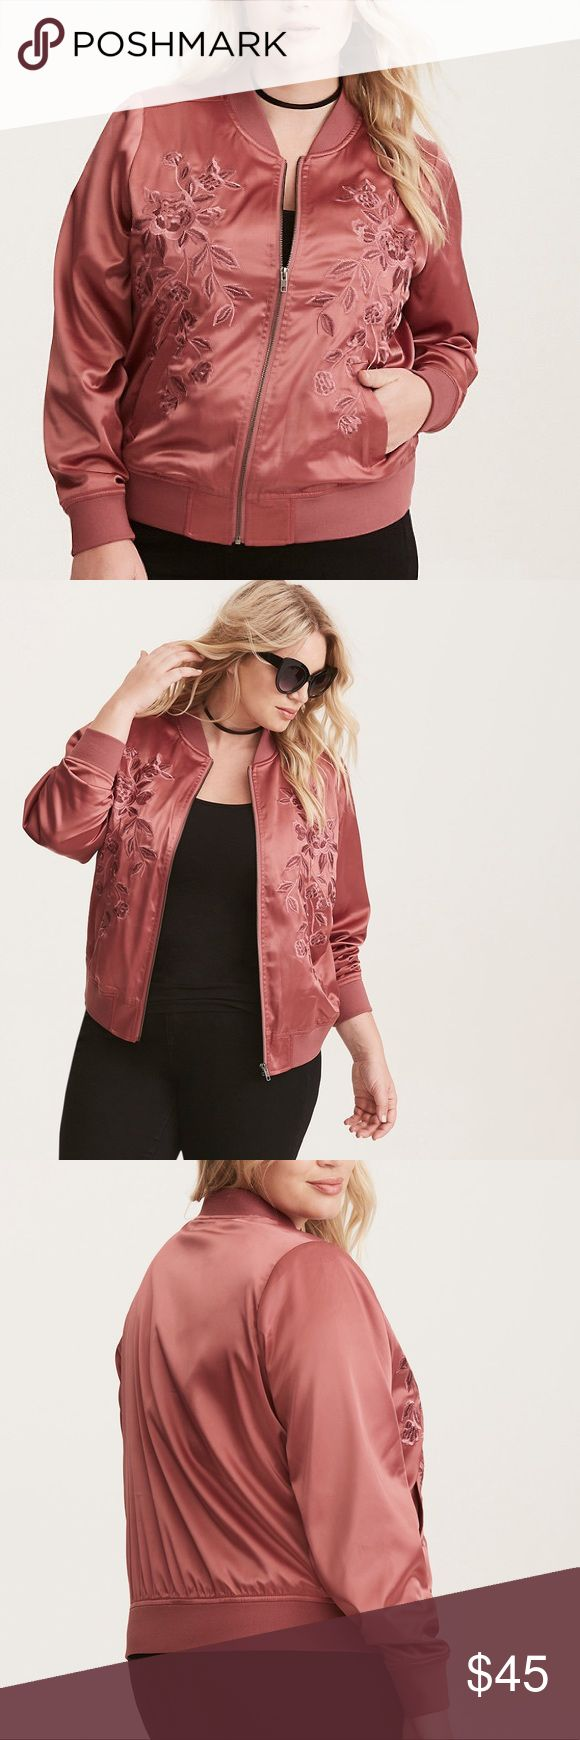 "Torrid Embroidered Satin Bomber Jacket ""A sporty classic gets an ""I feel pretty"" upgrade. Rosy mauve satin is a feminine twist on the tomboy bomber, with gorgeous rose embroidery highlighting the front of the jacket. Ribbed trim and a zip front lend definition to the look. Approx measures 27"" from shoulder. Polyester/spandex."" New with tags, size 3X. torrid Jackets & Coats"